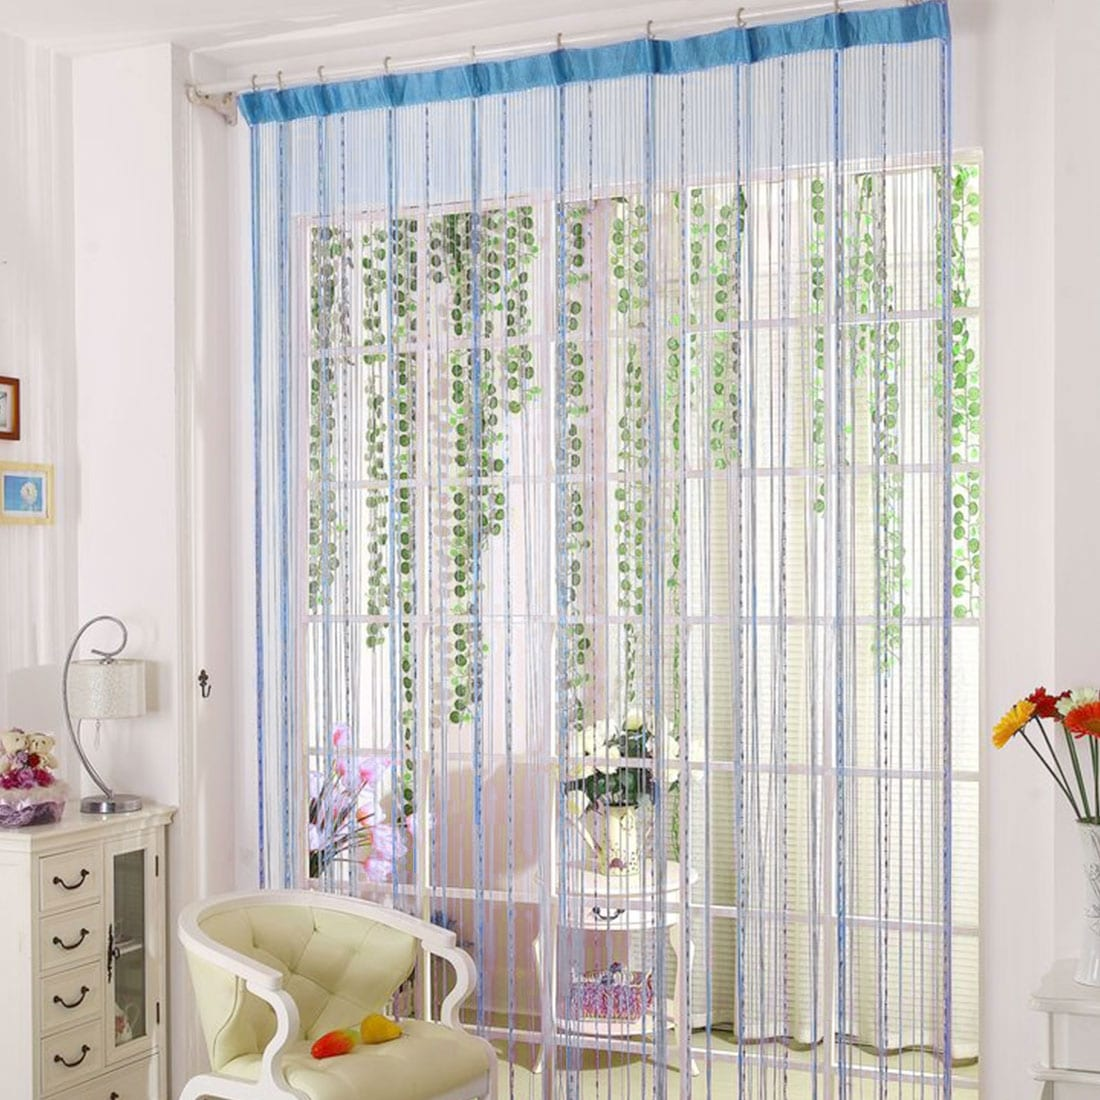 Shop Drop Beaded Chain String Curtain Voile Net Panels for Room ...